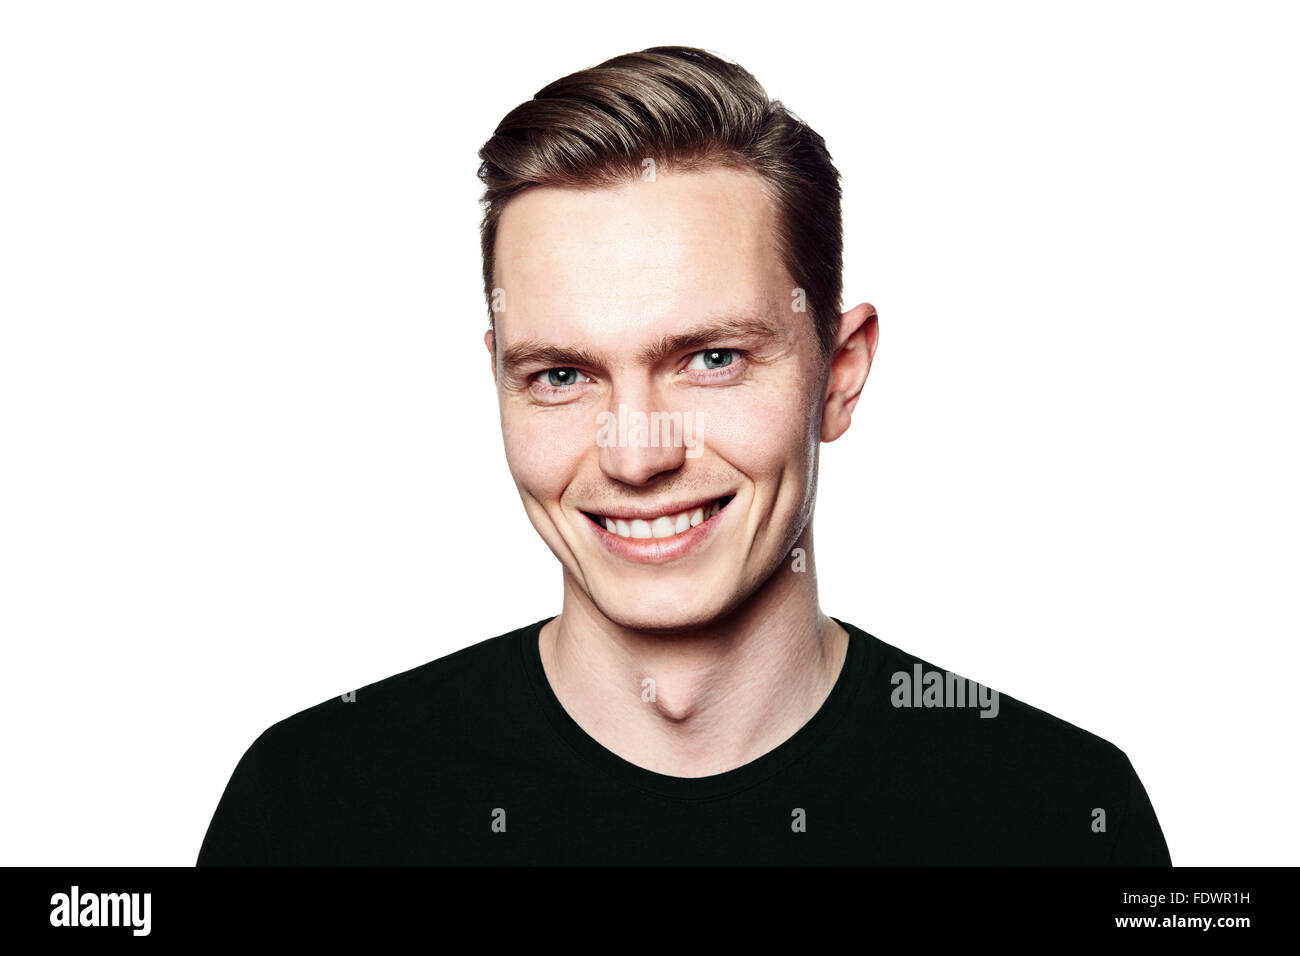 Studio shot of young man smiling to camera. Isolated on white background. Horizontal format, he is looking to the - Stock Image